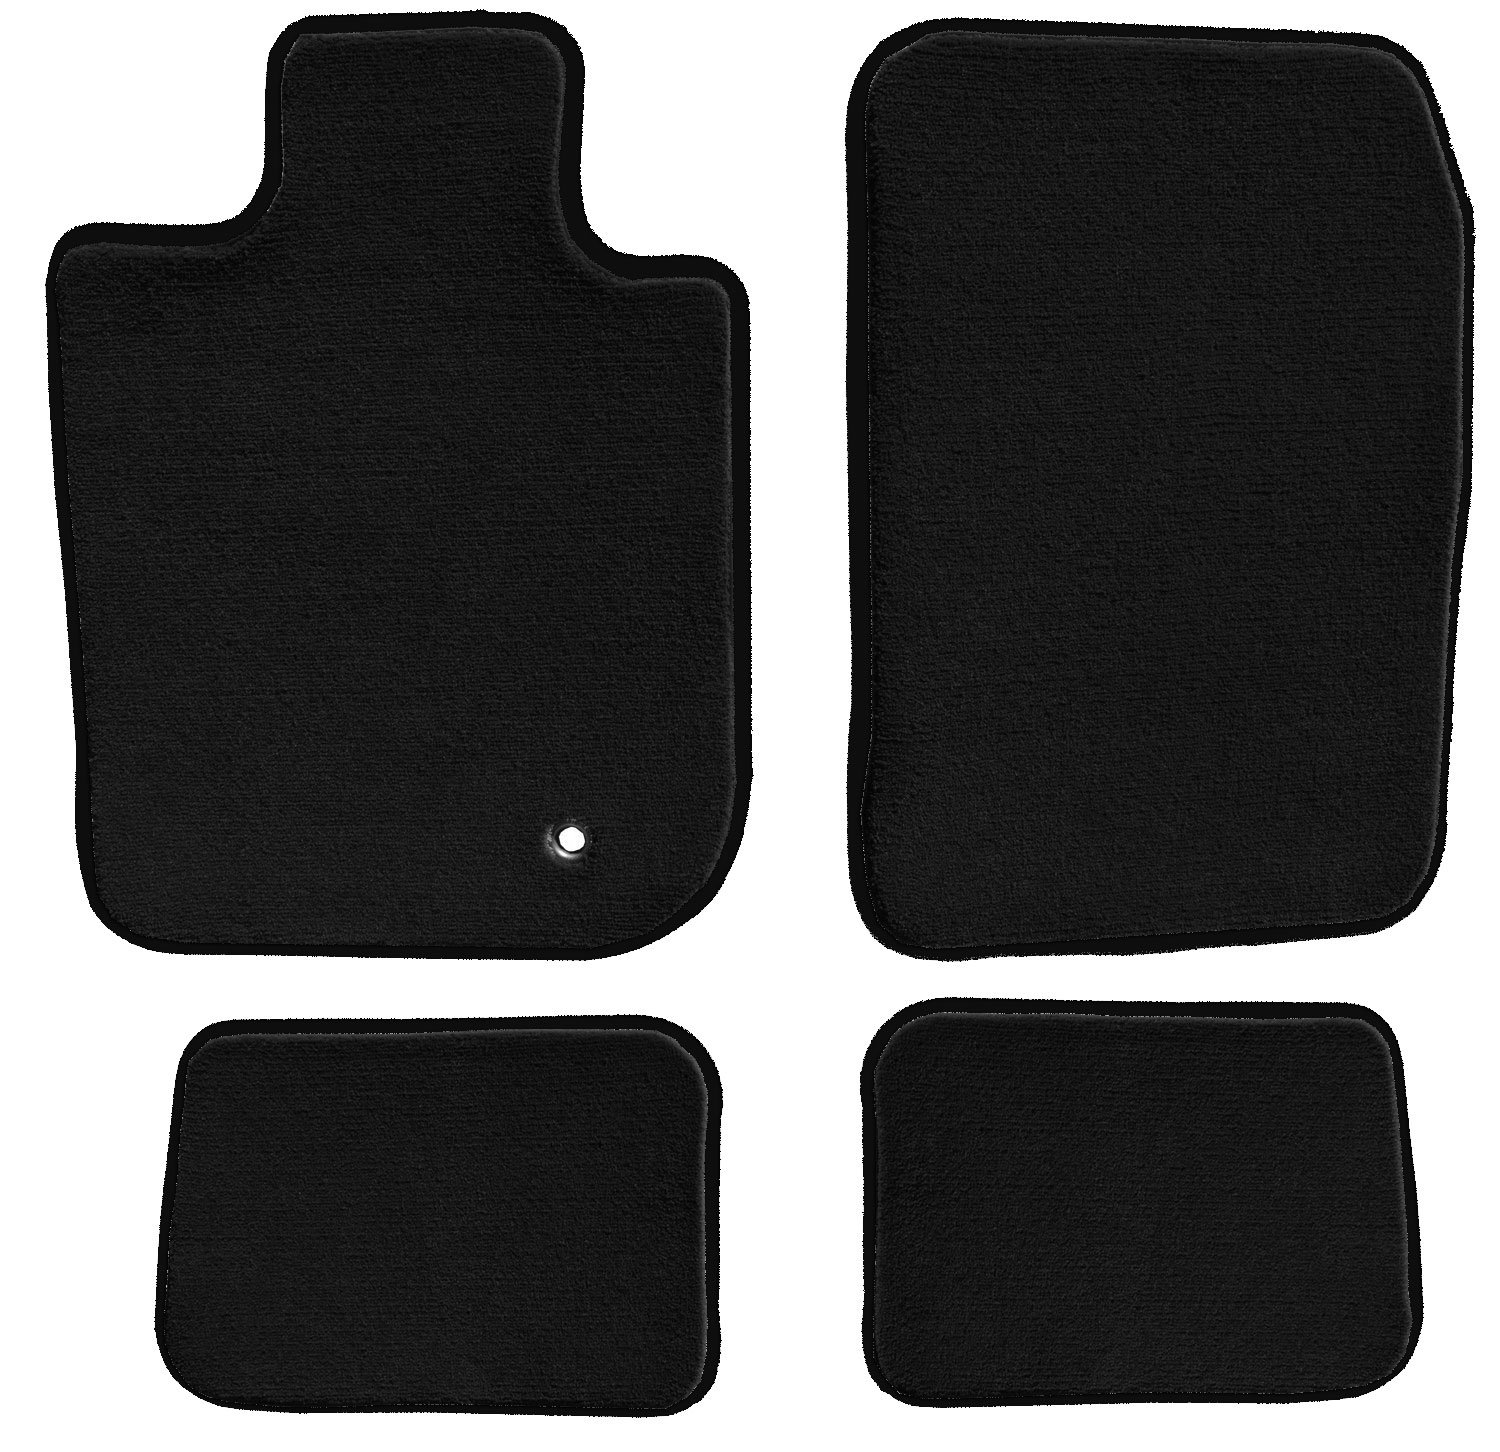 GGBAILEY D3846A-S1A-BK-LP Custom Fit Car Mats for 2008, 2009, 2010, 2011, 2012, 2013, 2014, 2015 Land Rover LR2 Black Loop Driver, Passenger & Rear Floor